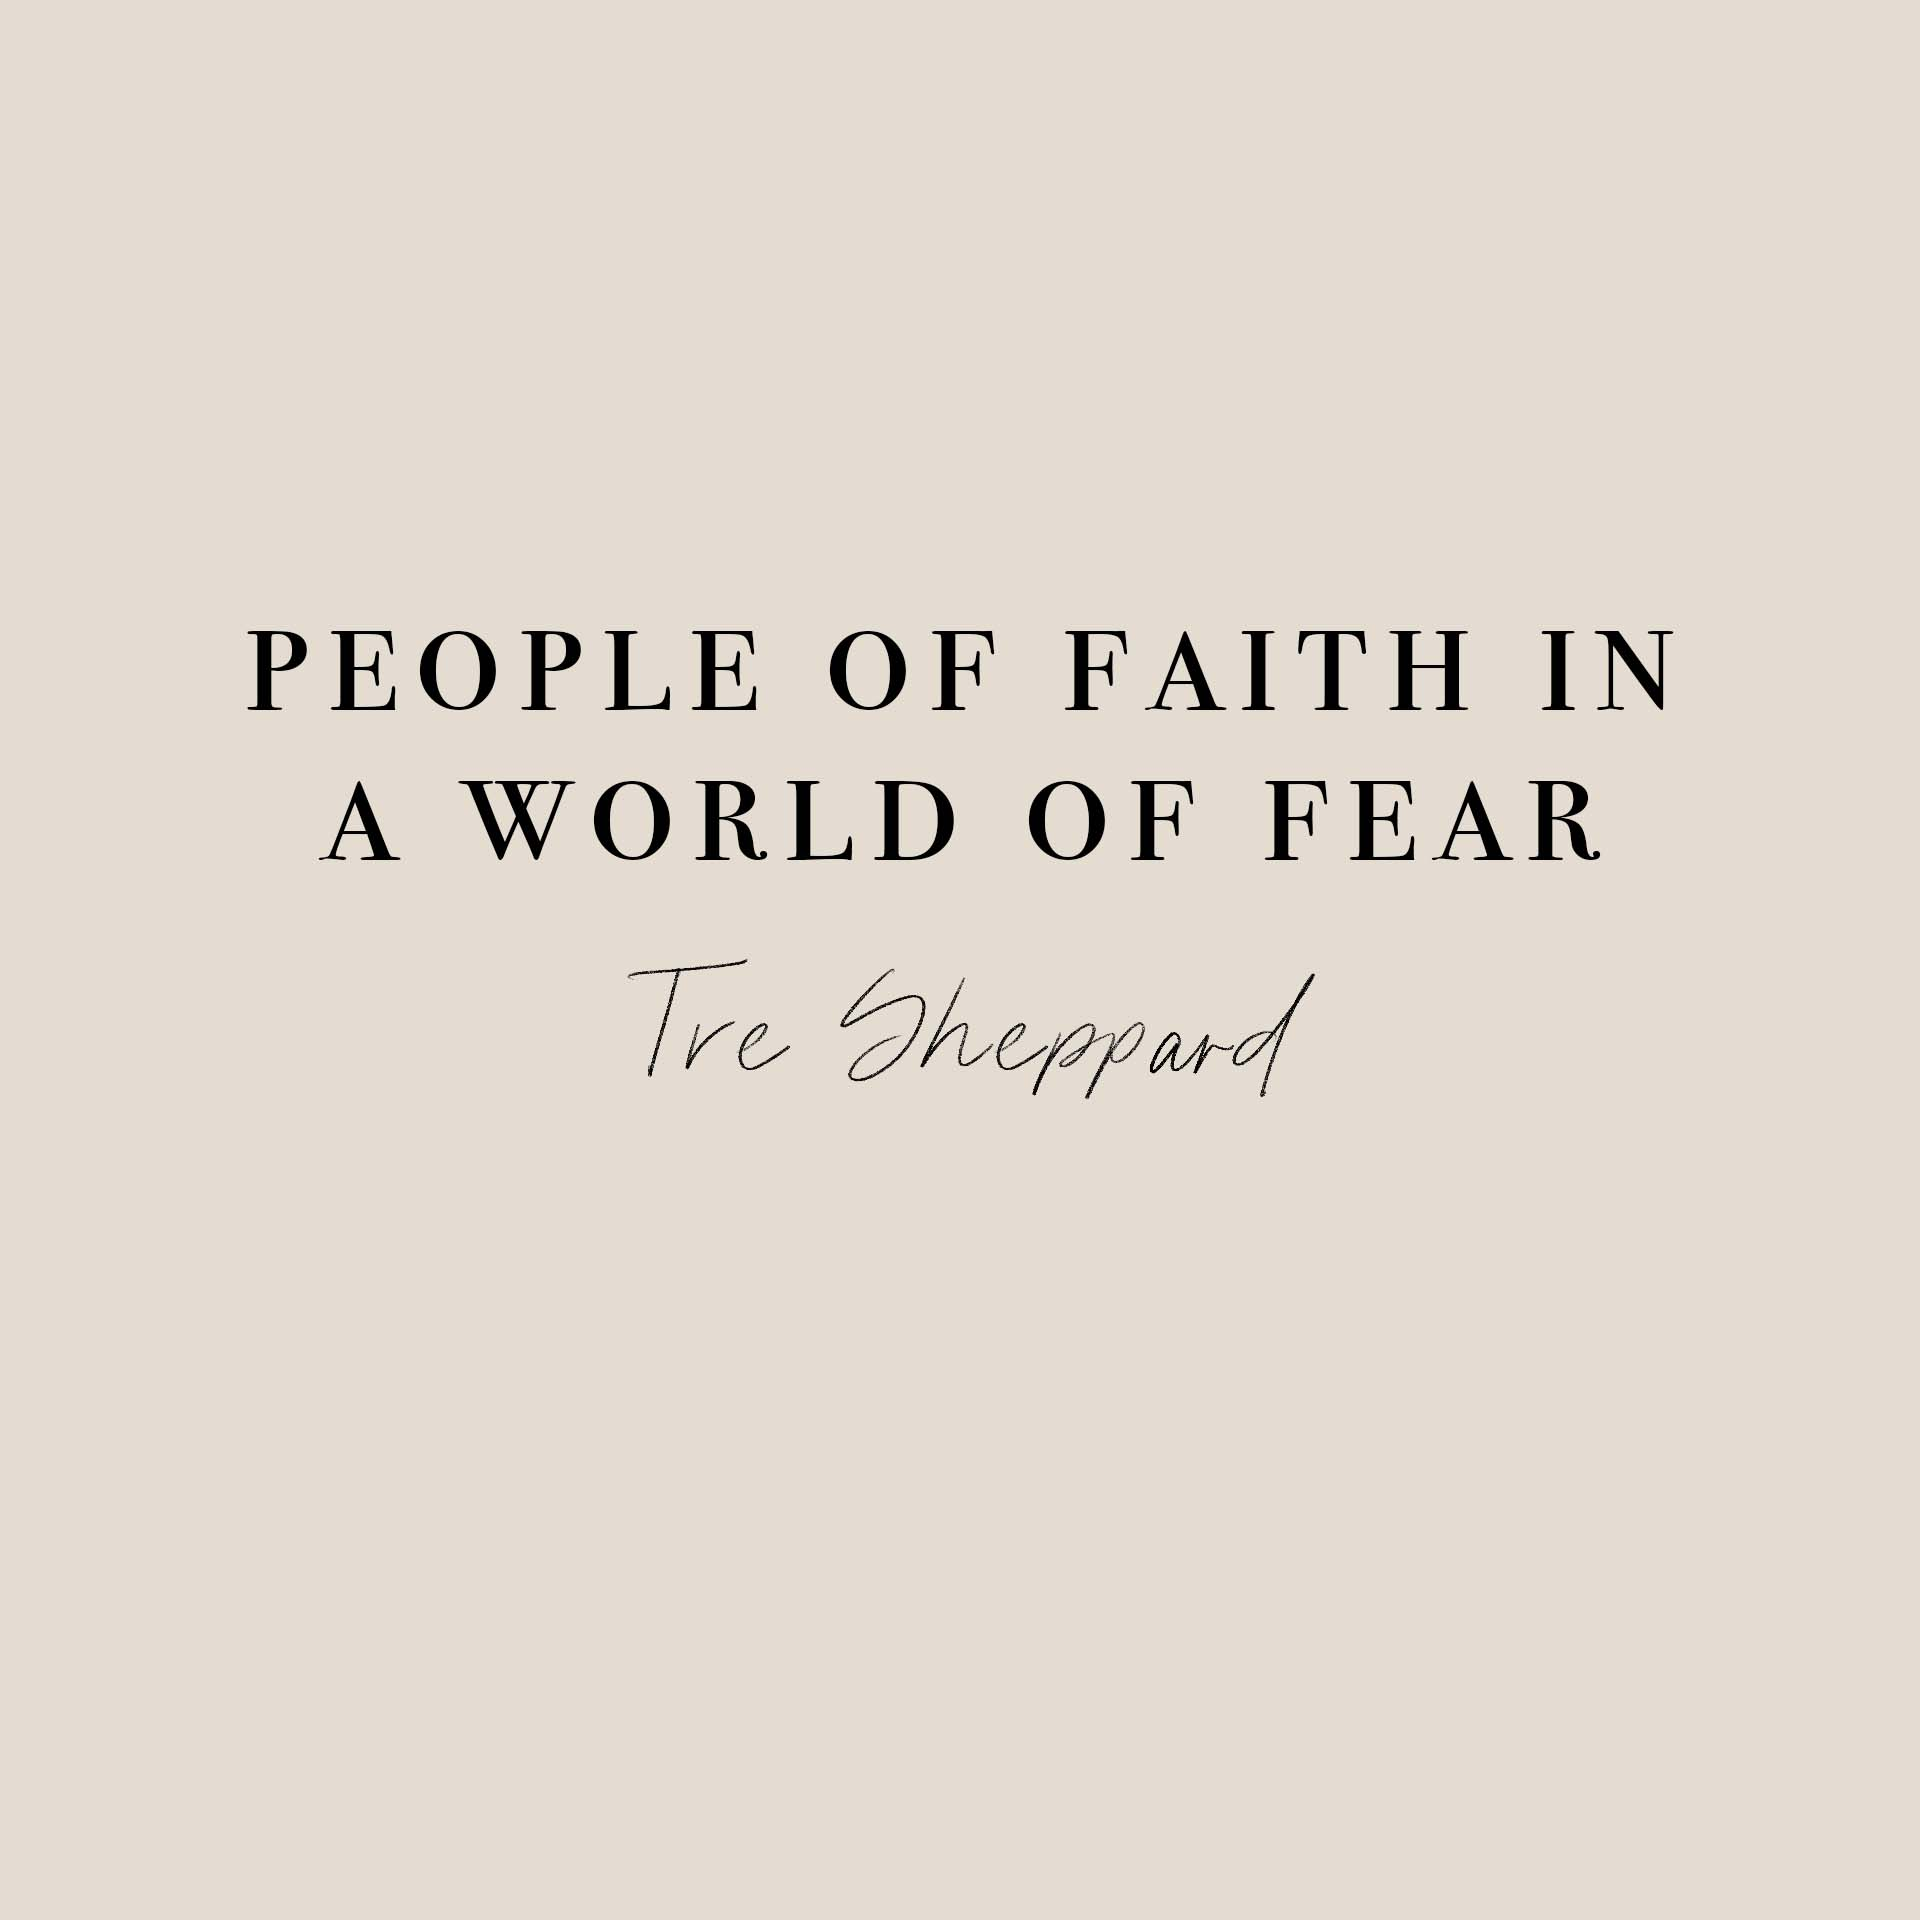 People of Faith in a world of fear    Tre looks at Hebrews 3 and how we respond with faith, exchanging our fears for the faithfulness of Jesus.